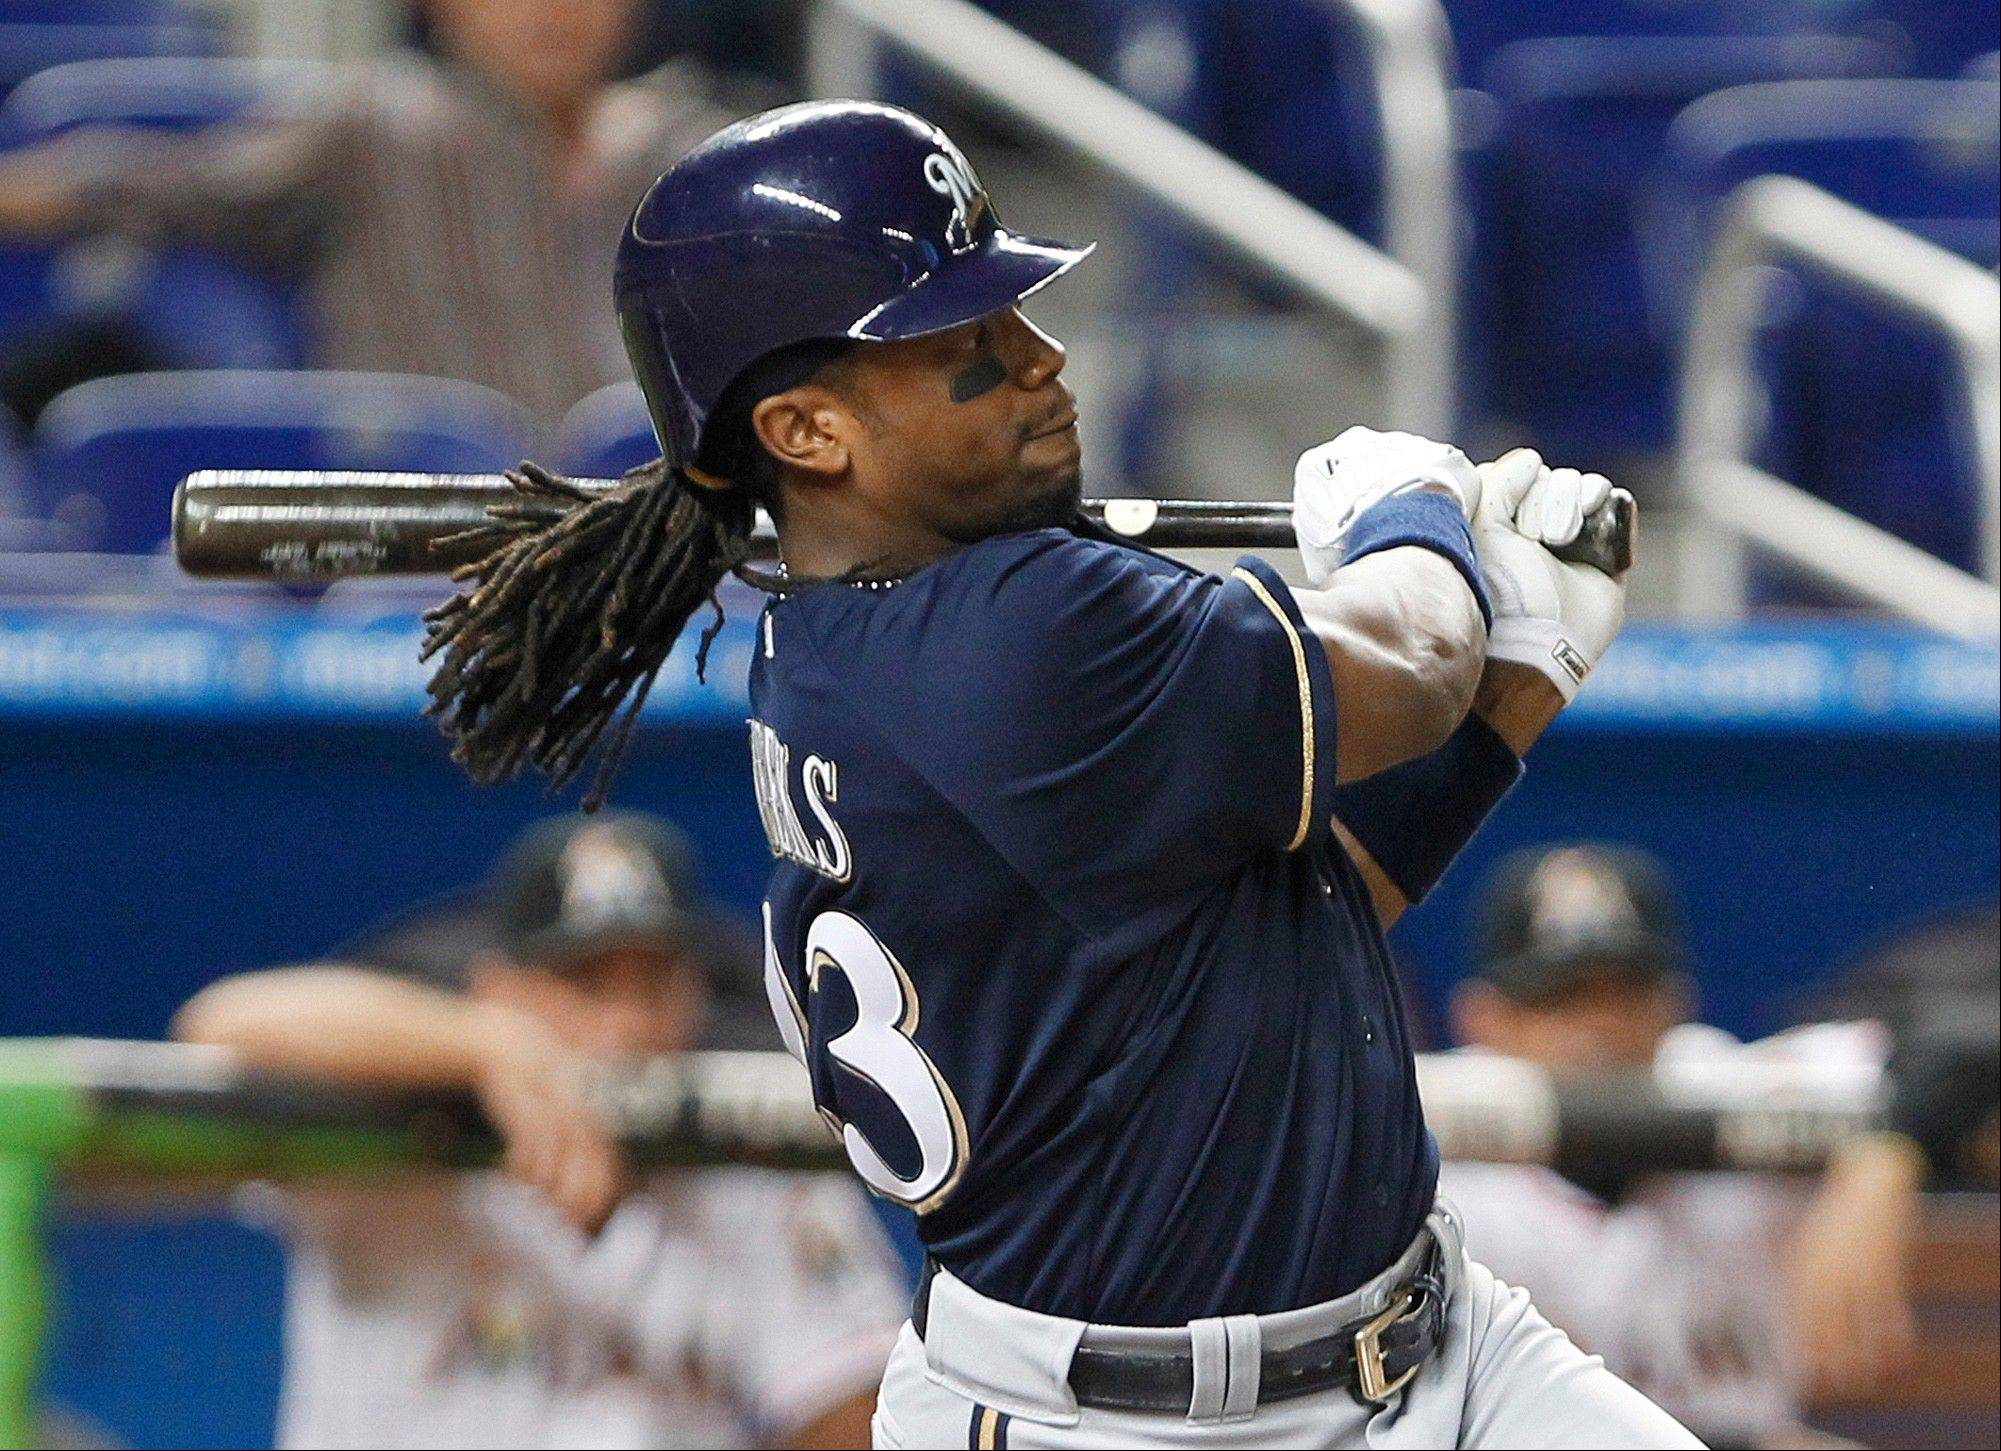 The Brewers� Rickie Weeks watches his two-run home run during the third inning Wednesday in Miami.